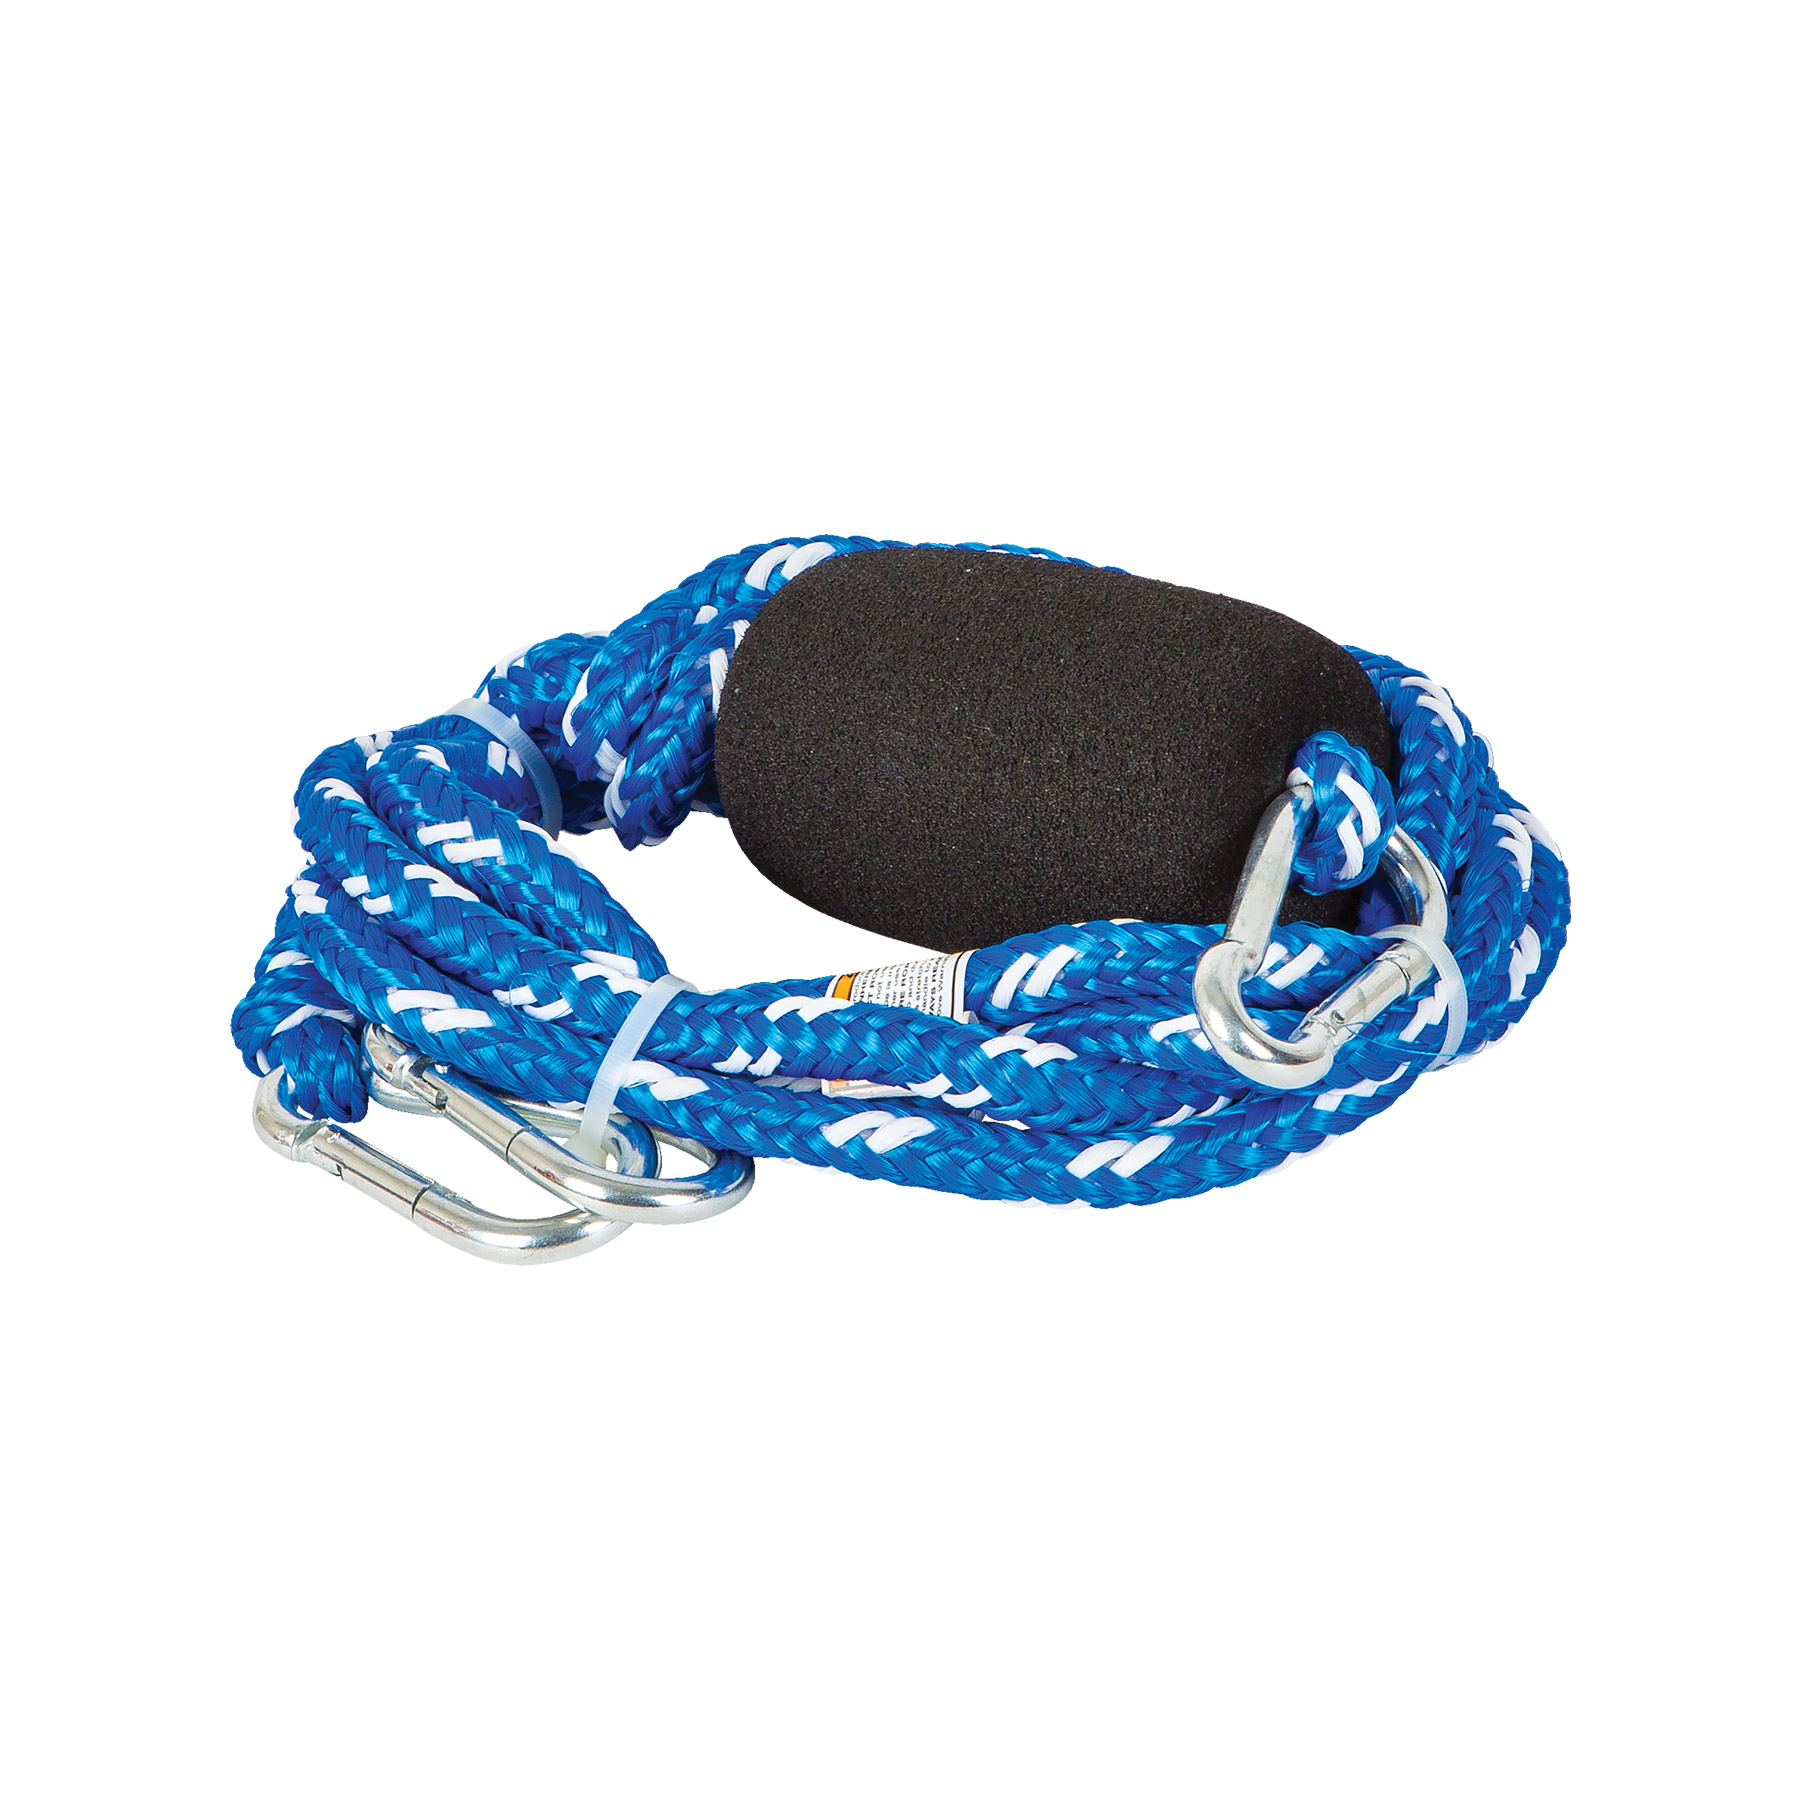 Растяжка V-образная O'Brien Boat Harness Blue 8'